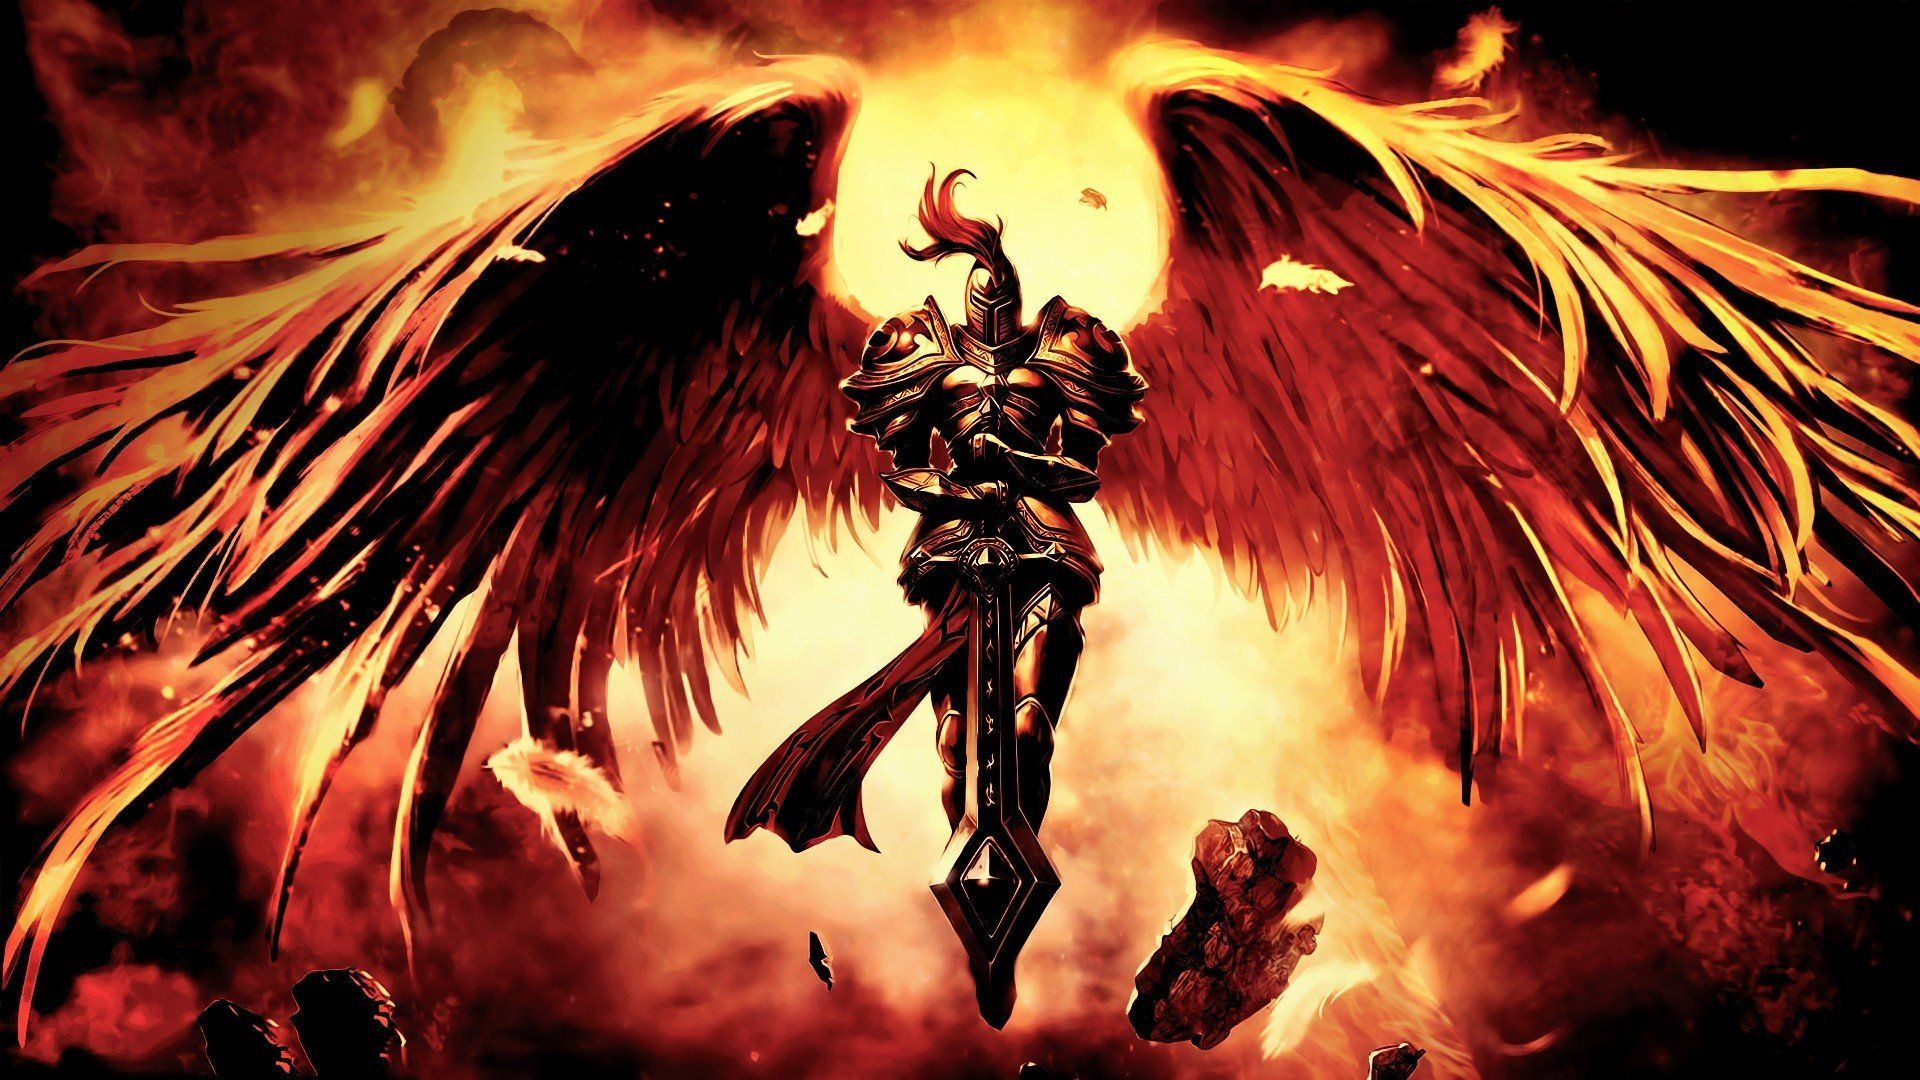 The Angel Of Death With Sword And Wings